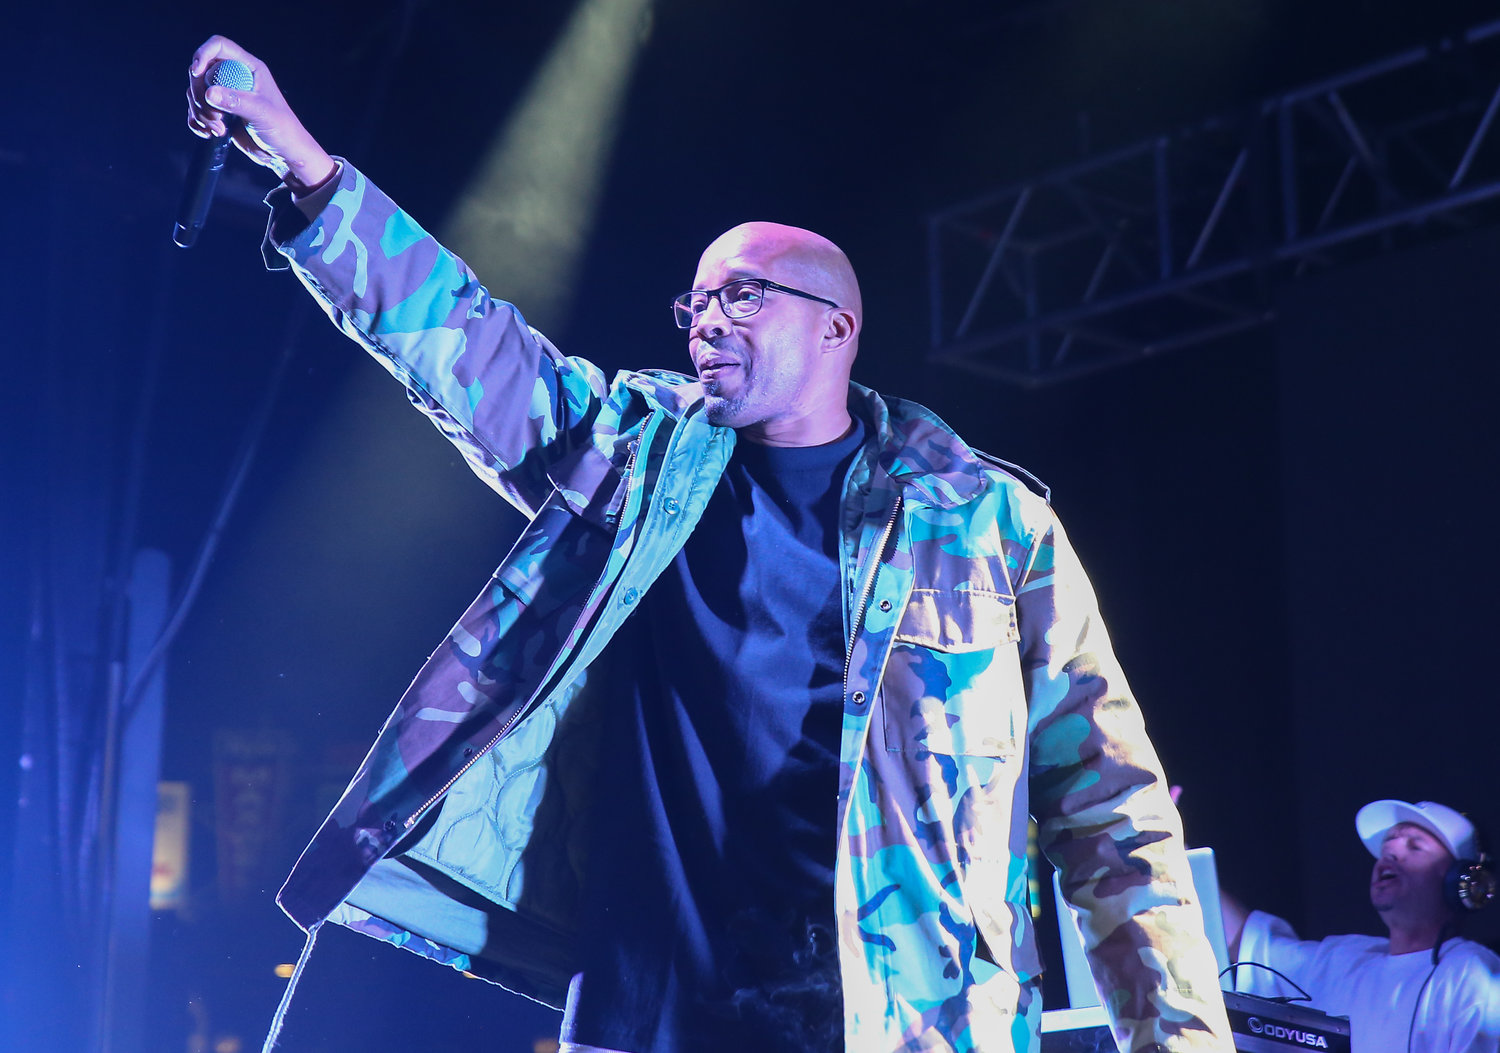 Warren G performs on the Puff Puff Pass tour on Sunday, Dec. 2, 2018 in Round Rock, TX.